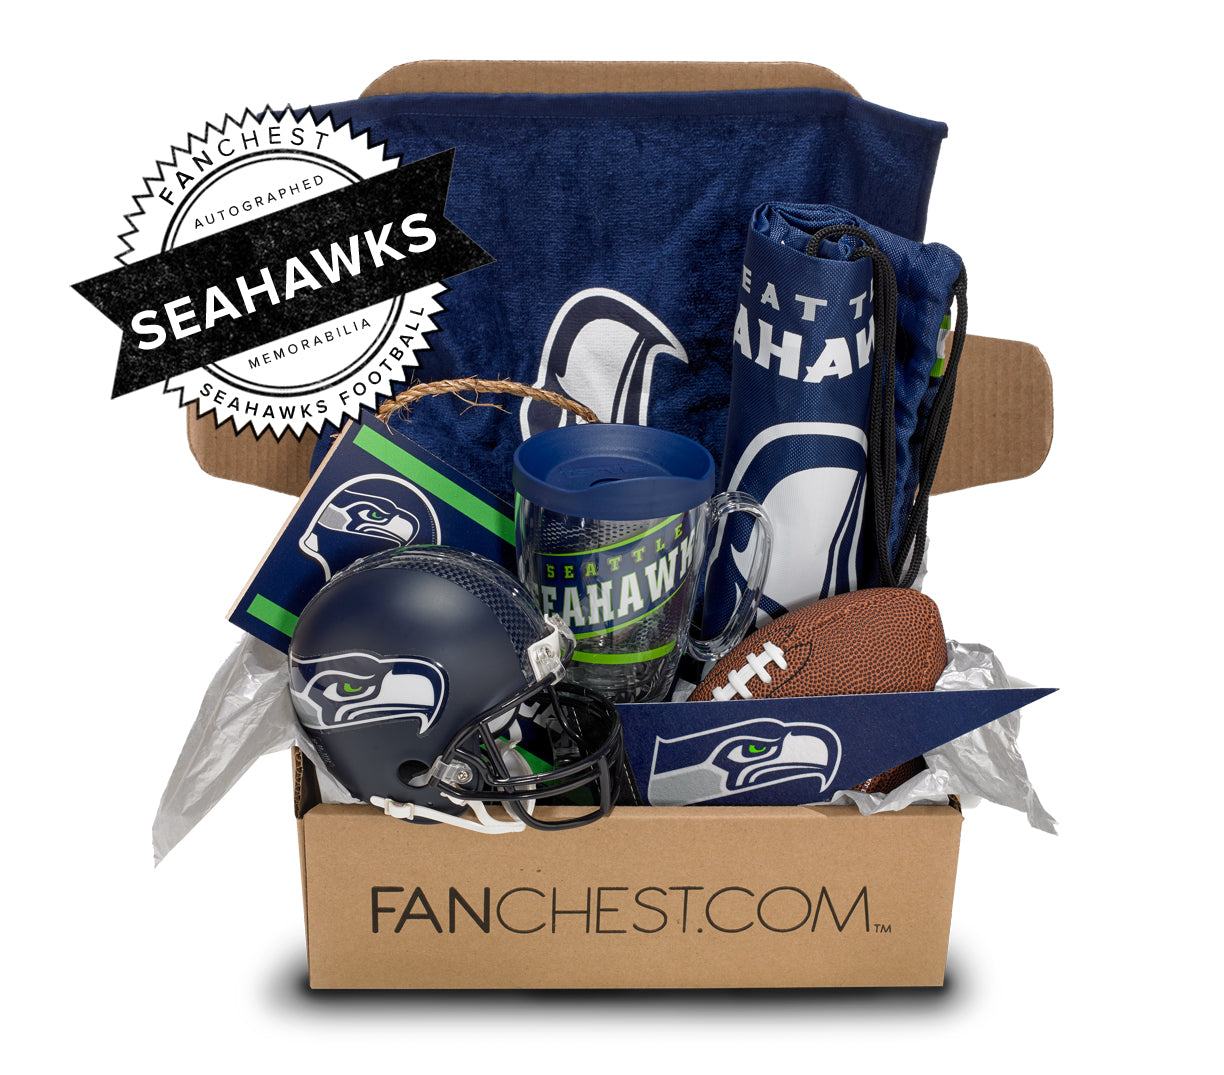 Seattle Seahawks Memorabilia Gift Box | Signed Mini Helmet Included